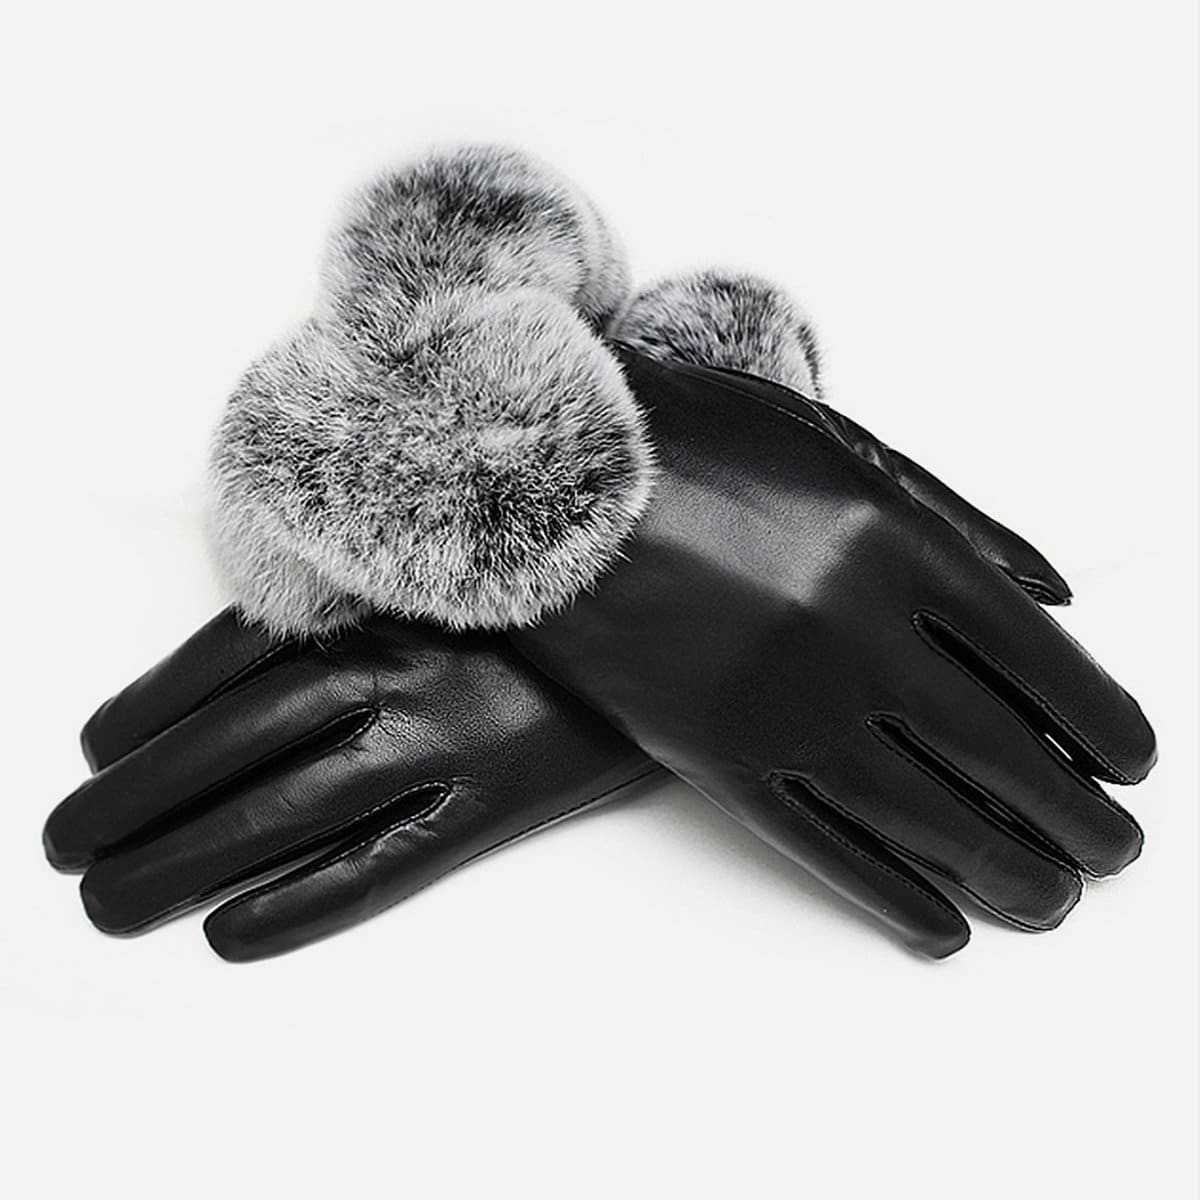 Contrast Faux Fur Gloves in Black by ROMWE on GOOFASH